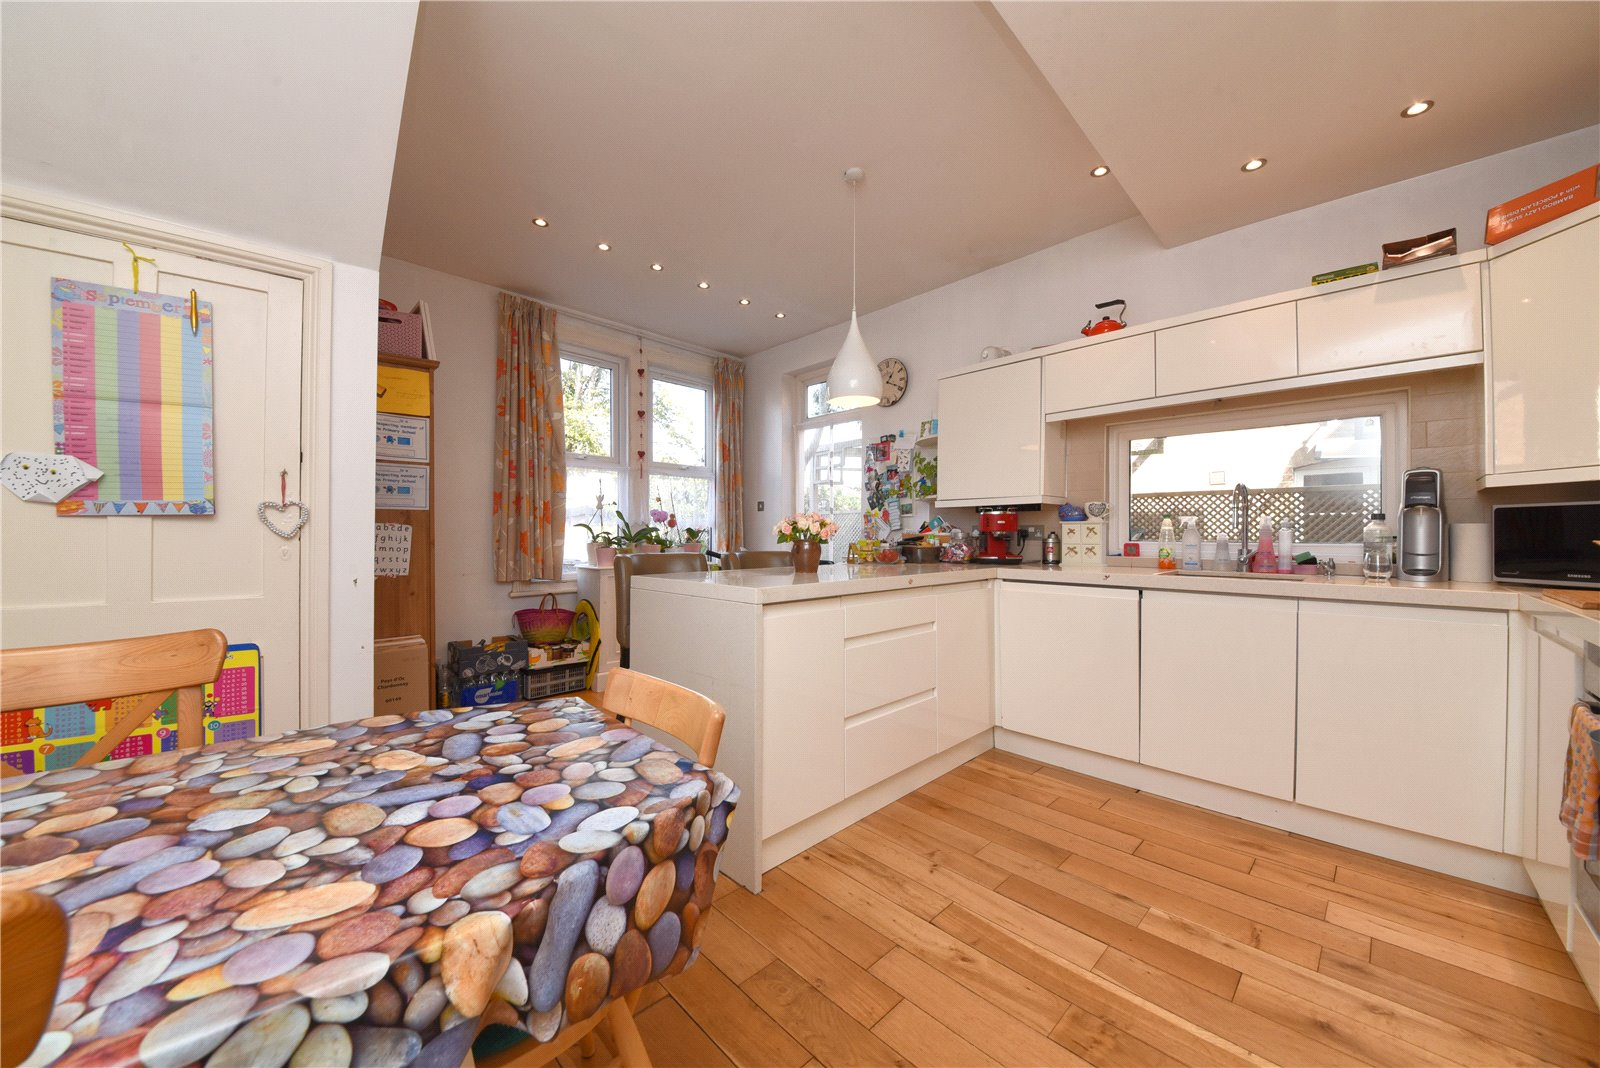 2 bed apartment for sale in East Finchley, N2 0SX  - Property Image 8